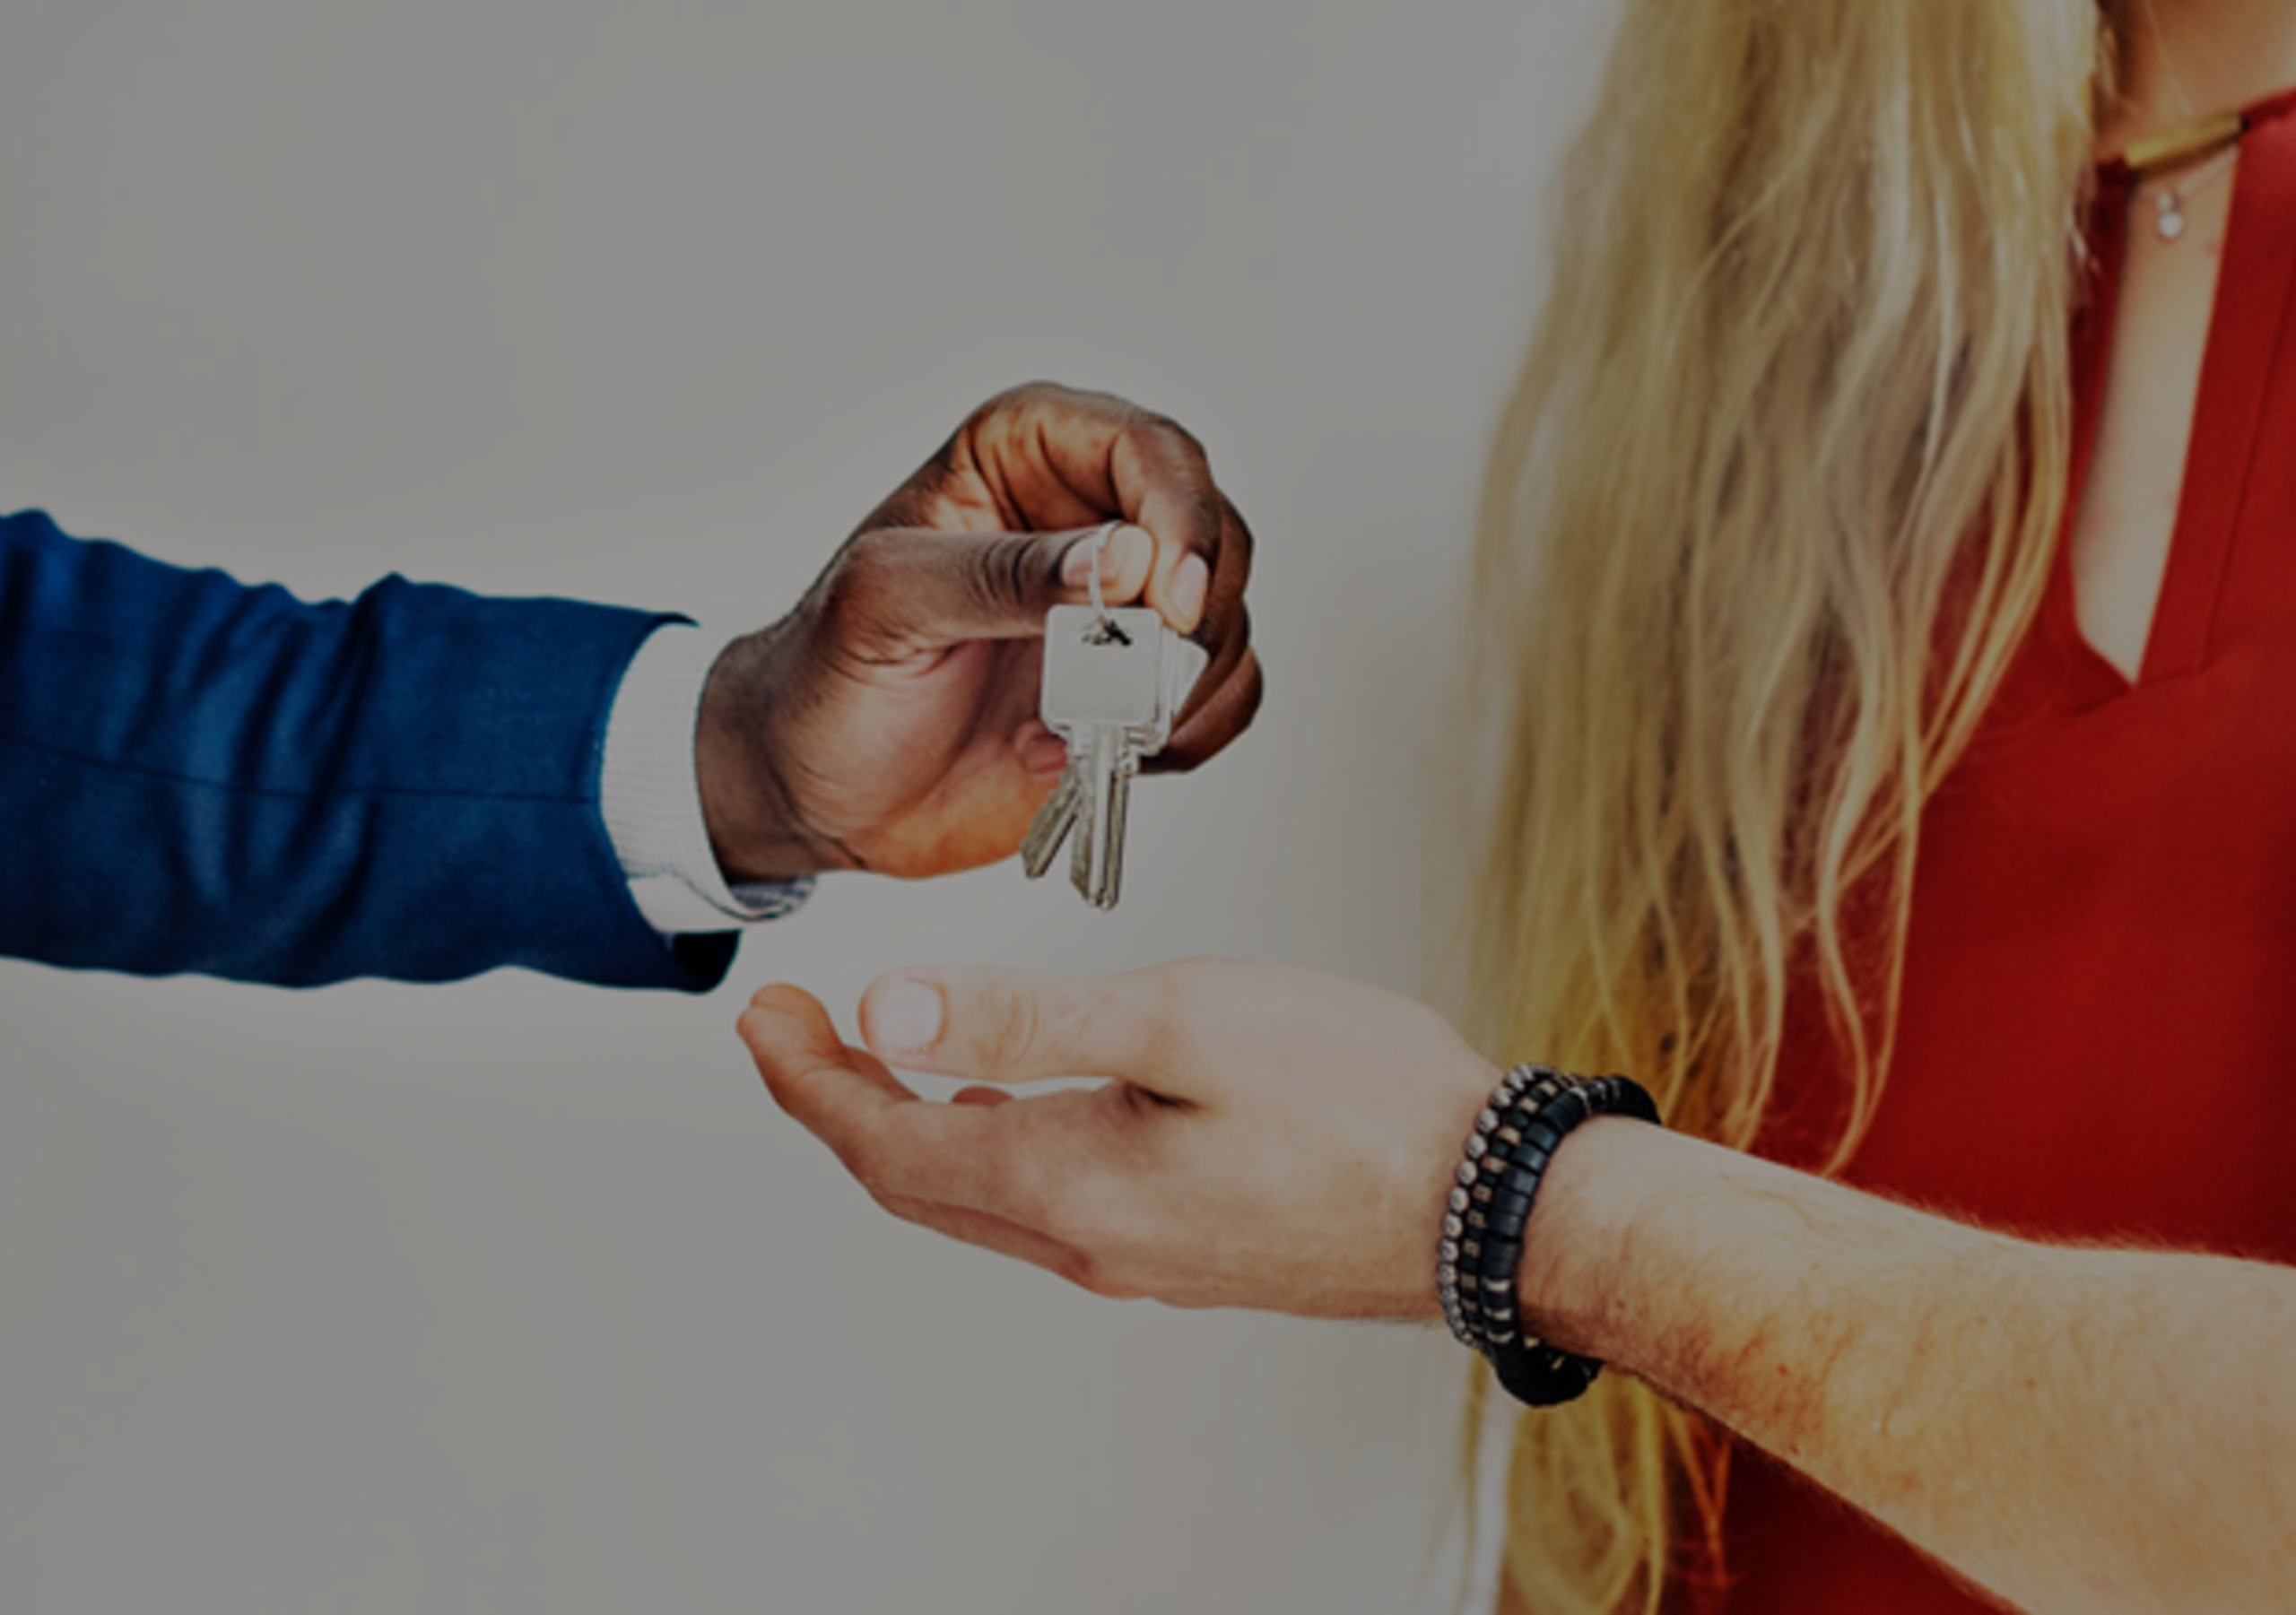 Buy or Rent: Why You Should Buy a Property Instead of Renting